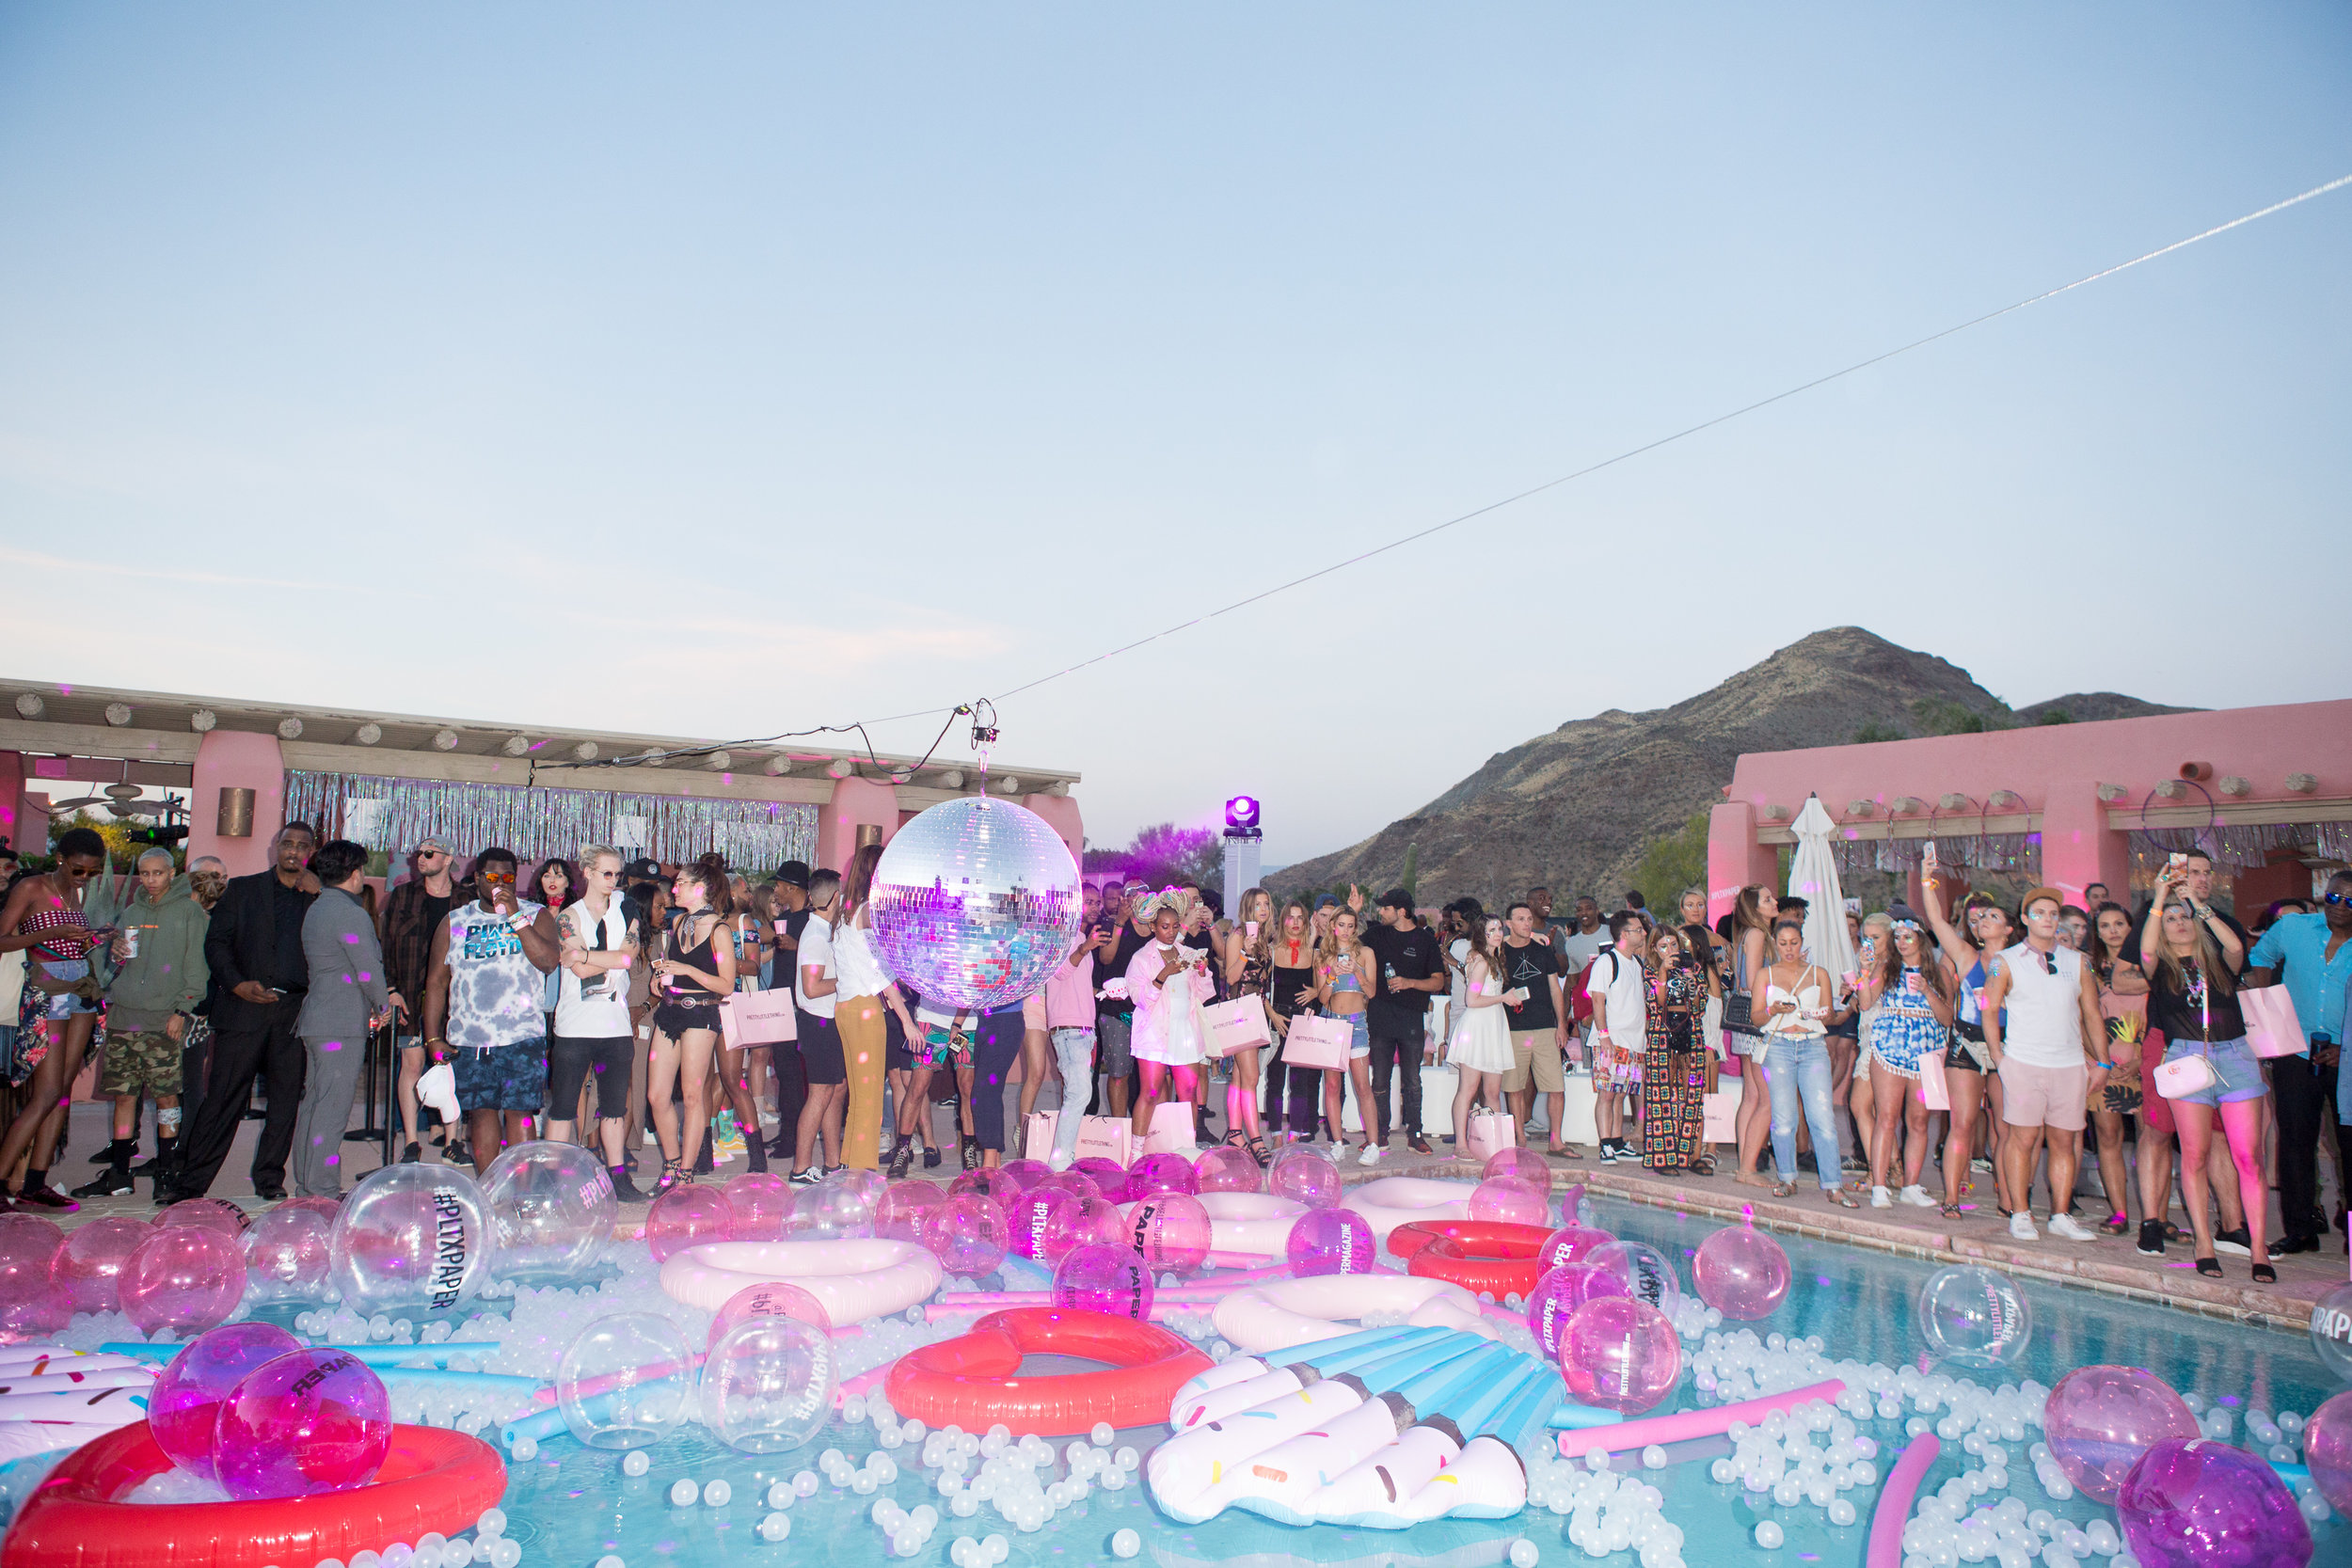 Ultimate Hollywood Coachella Poolside Party partygoers dancing.jpg